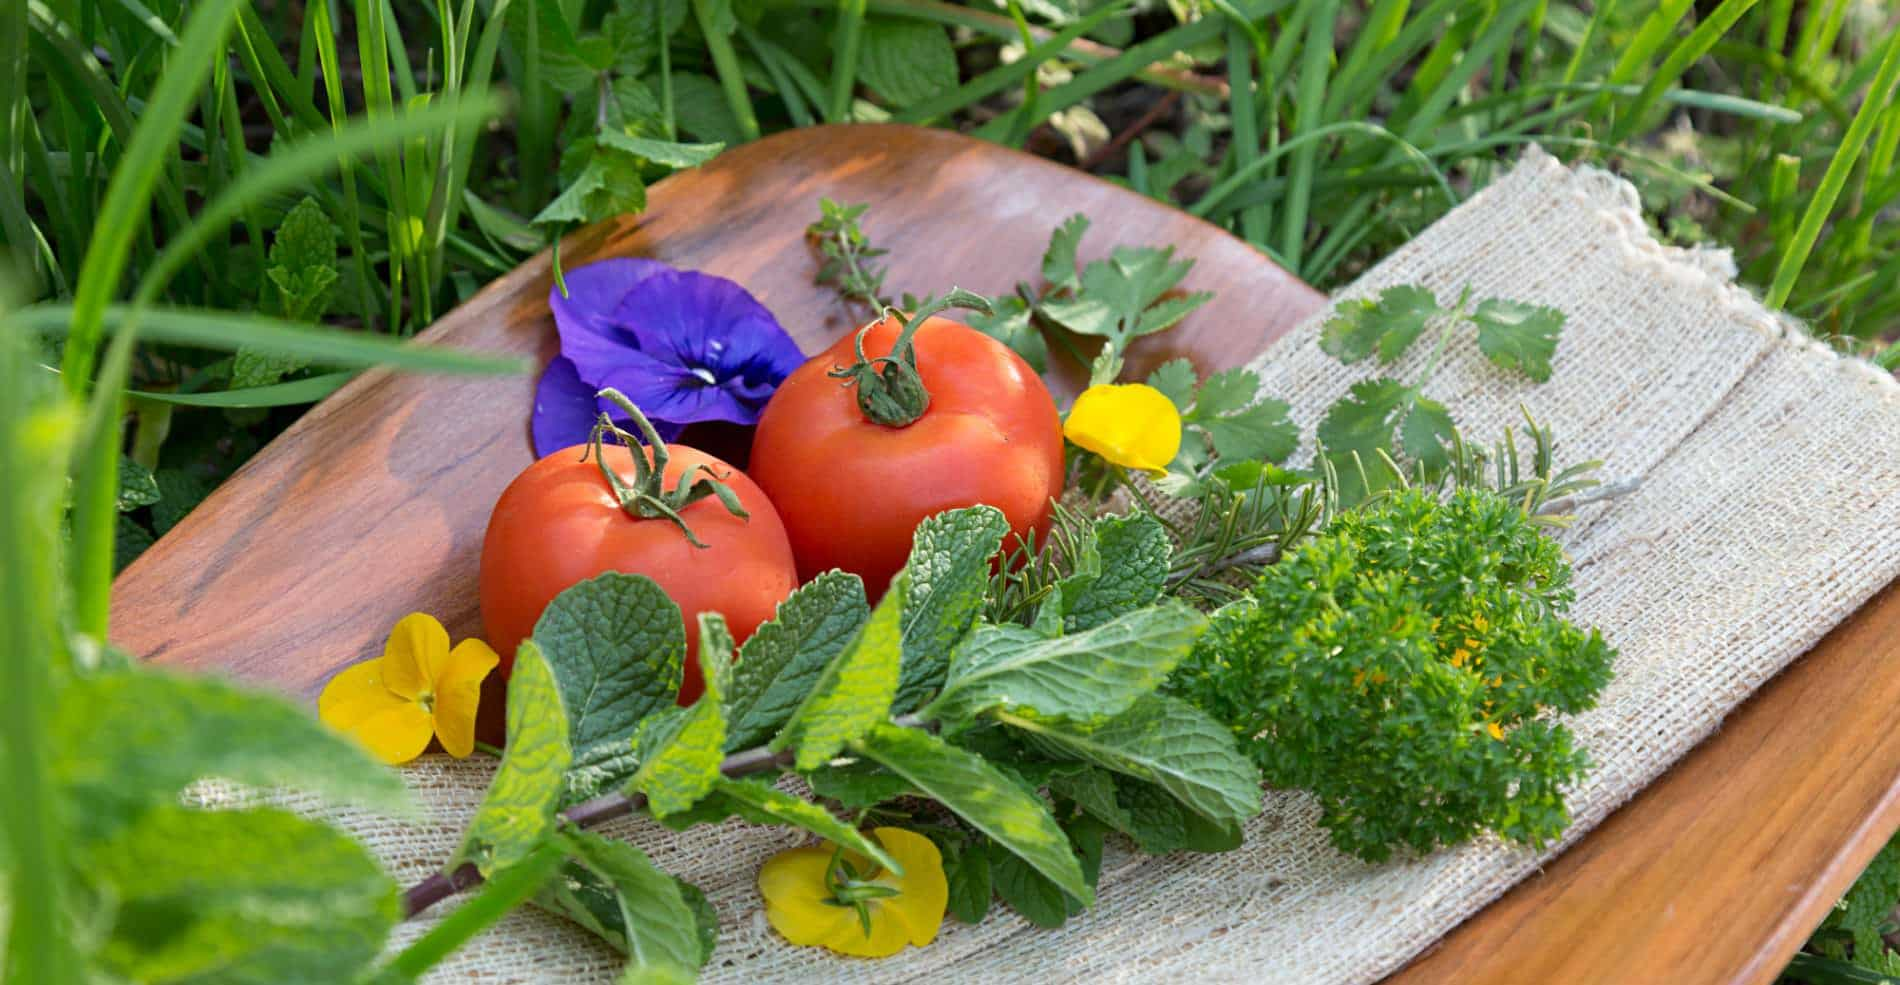 On a wooden cutting board is an arrangement of fresh red tomatoes, fresh green parsley, and other herbs